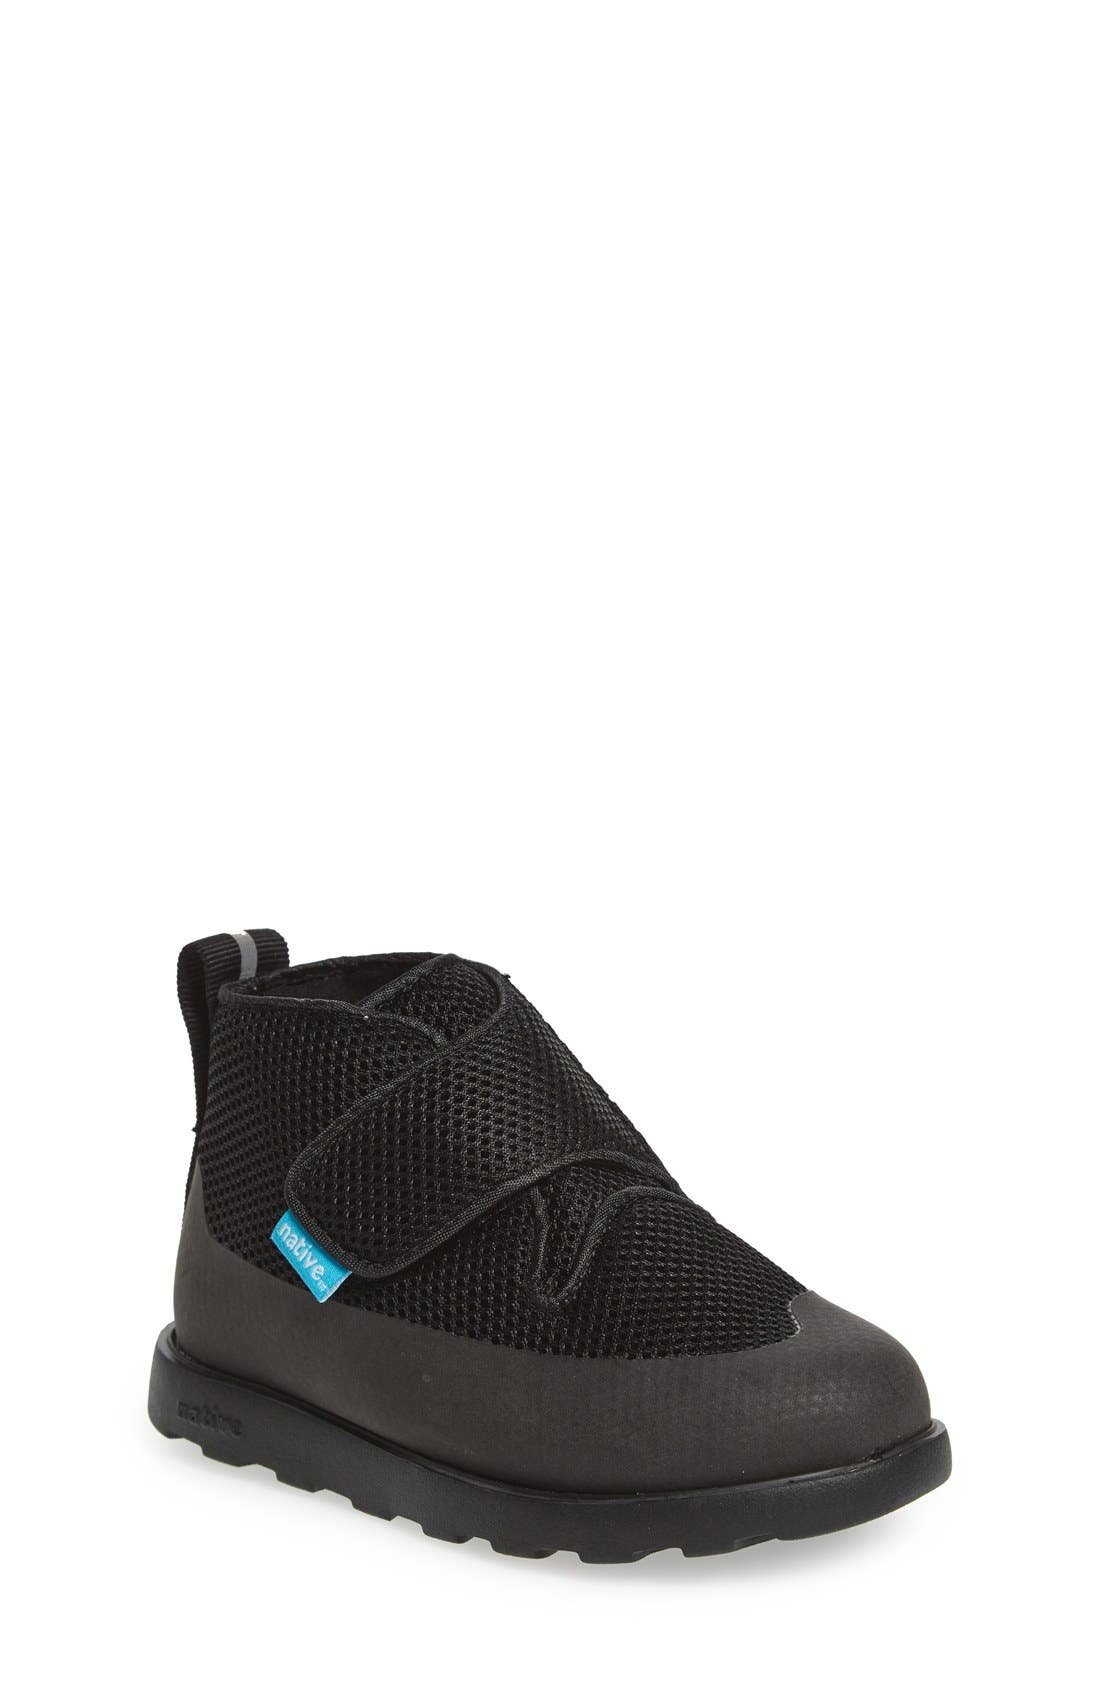 'Fitzroy Fast' Water Resistant Boot,                             Main thumbnail 1, color,                             018